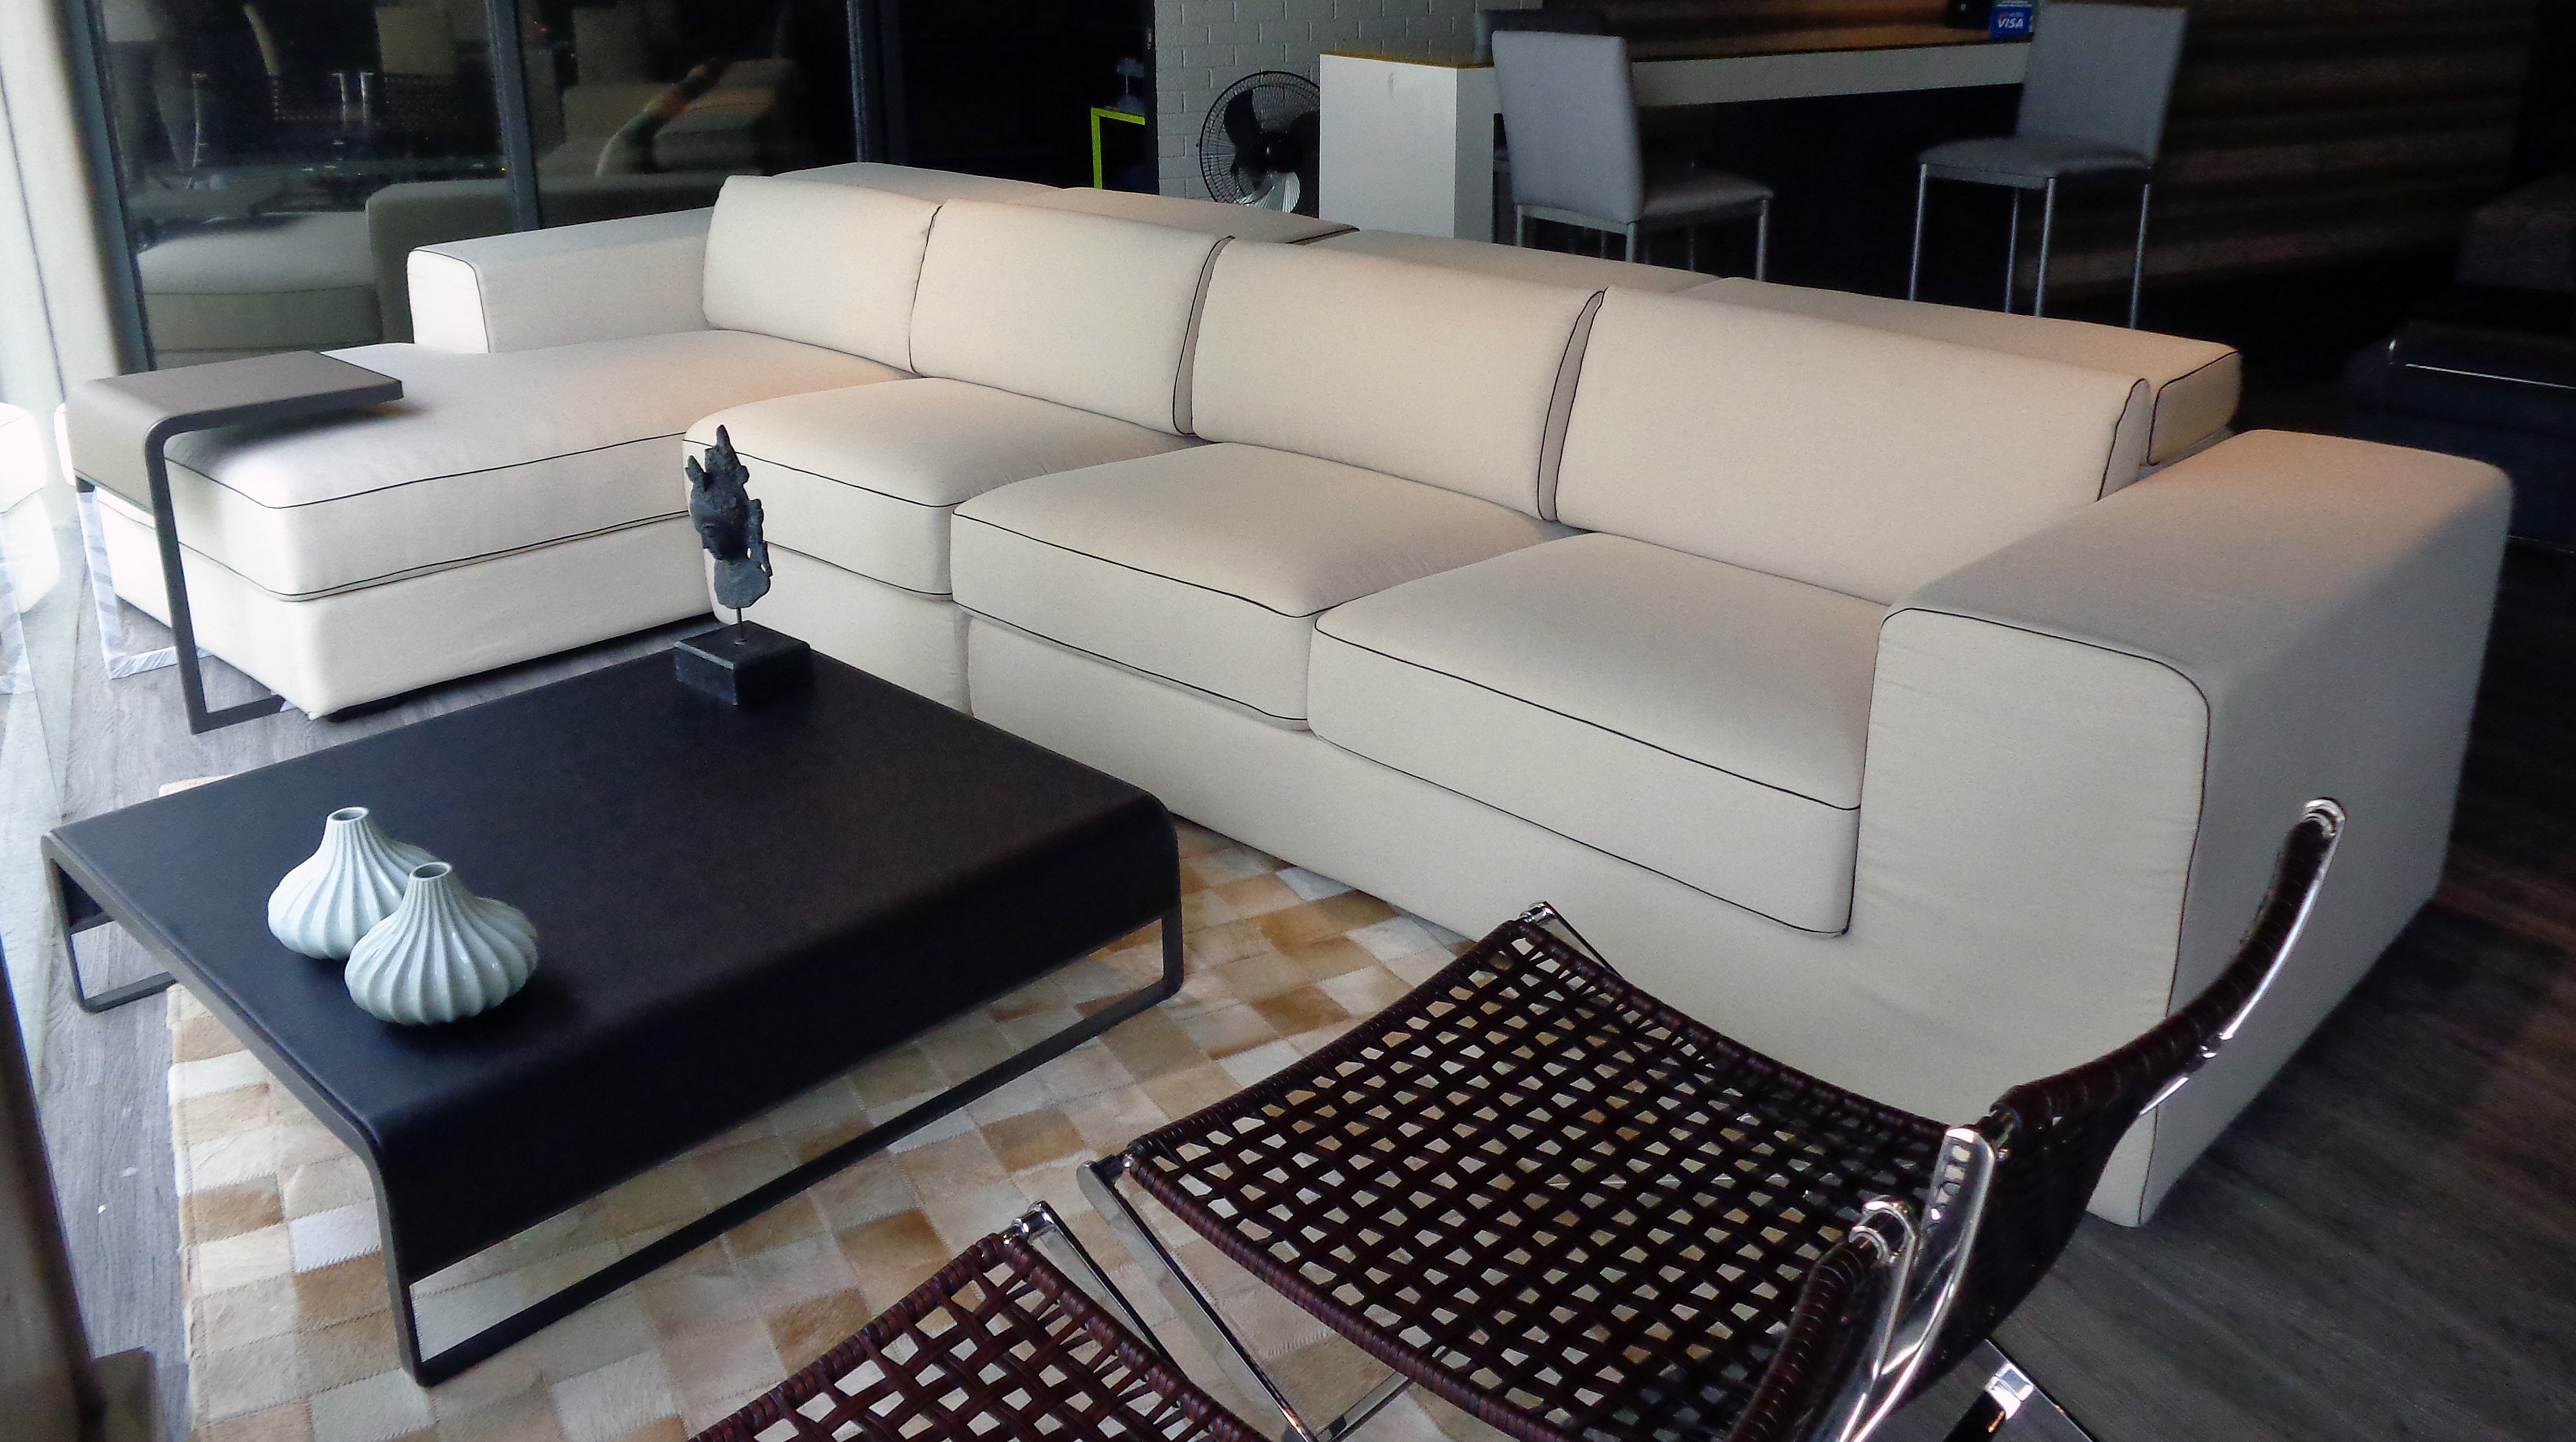 Hc F8165 Sectional Sofa Home Central Philippines